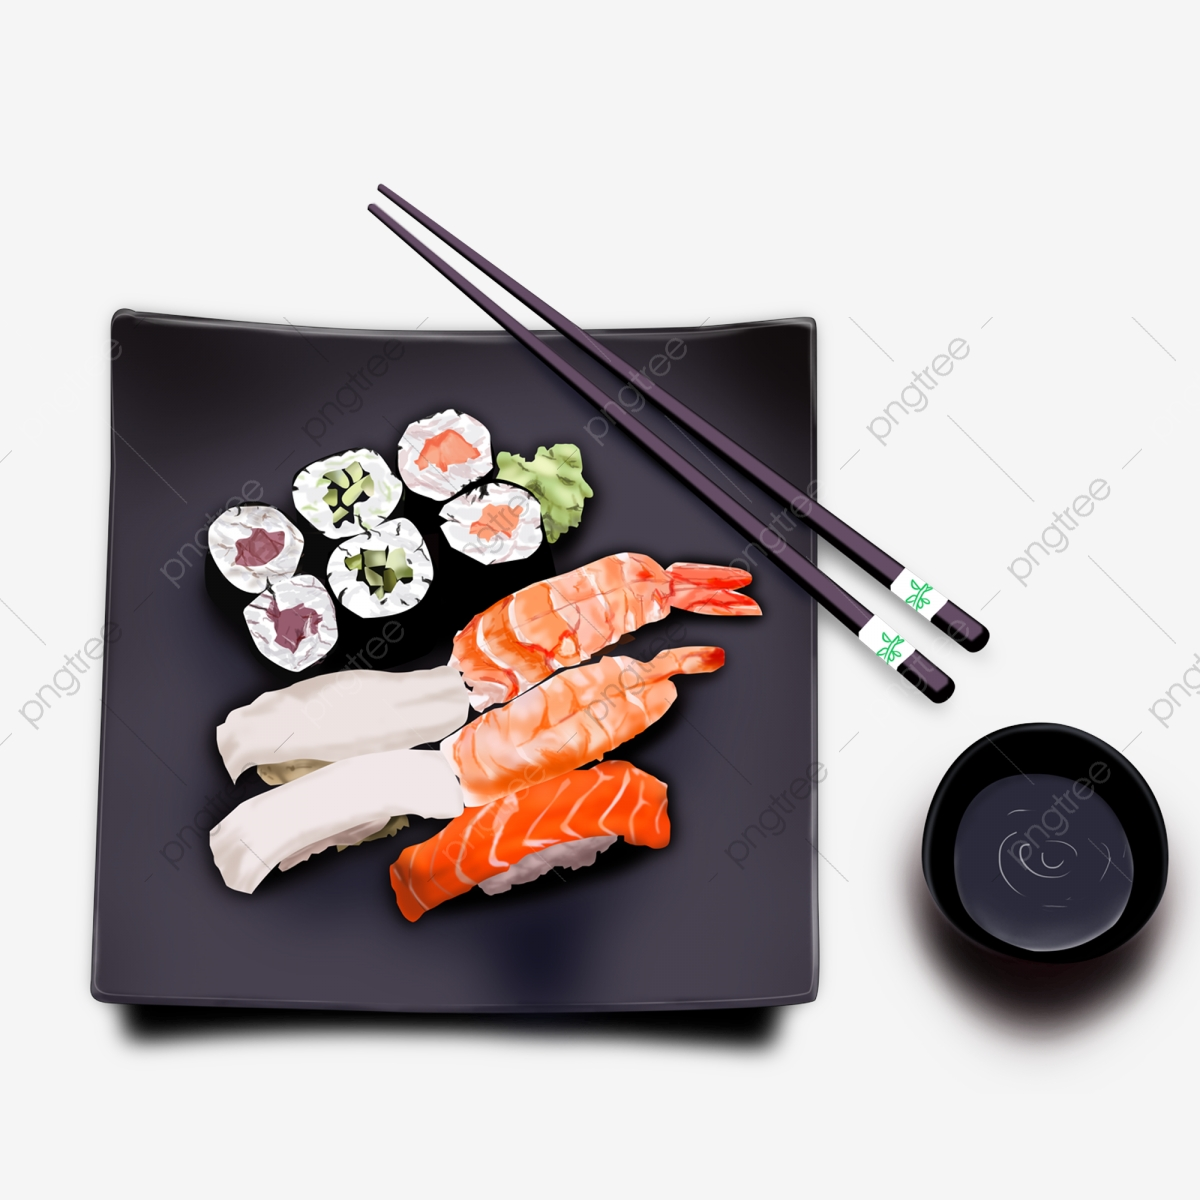 Element Cuisine Japanese Cuisine Food Element Japan Daily Material Sushi Png